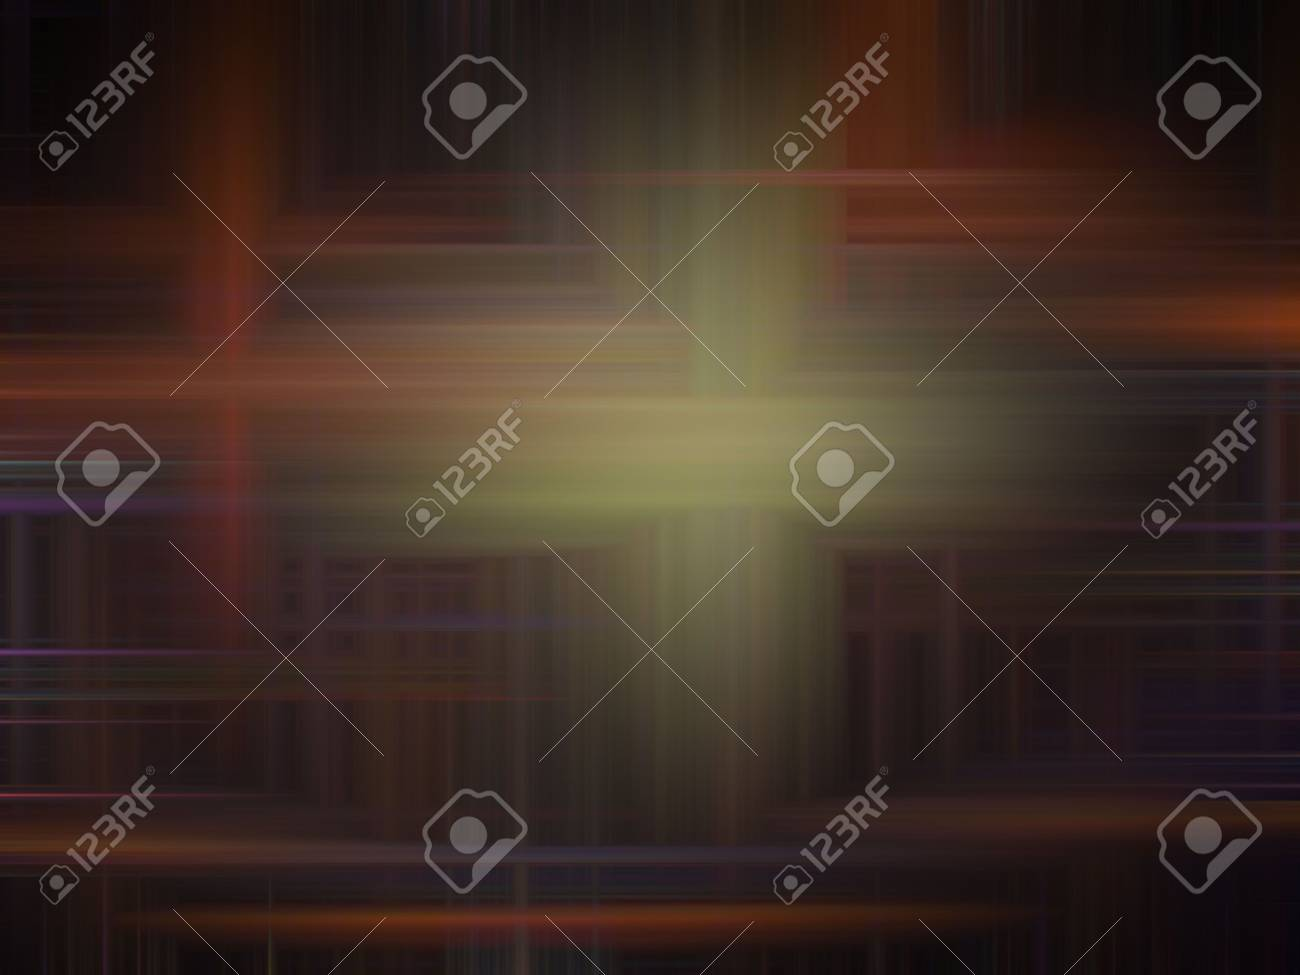 Shades of colors weaving together (computer generated, fractal abstract background) Stock Photo - 1978963